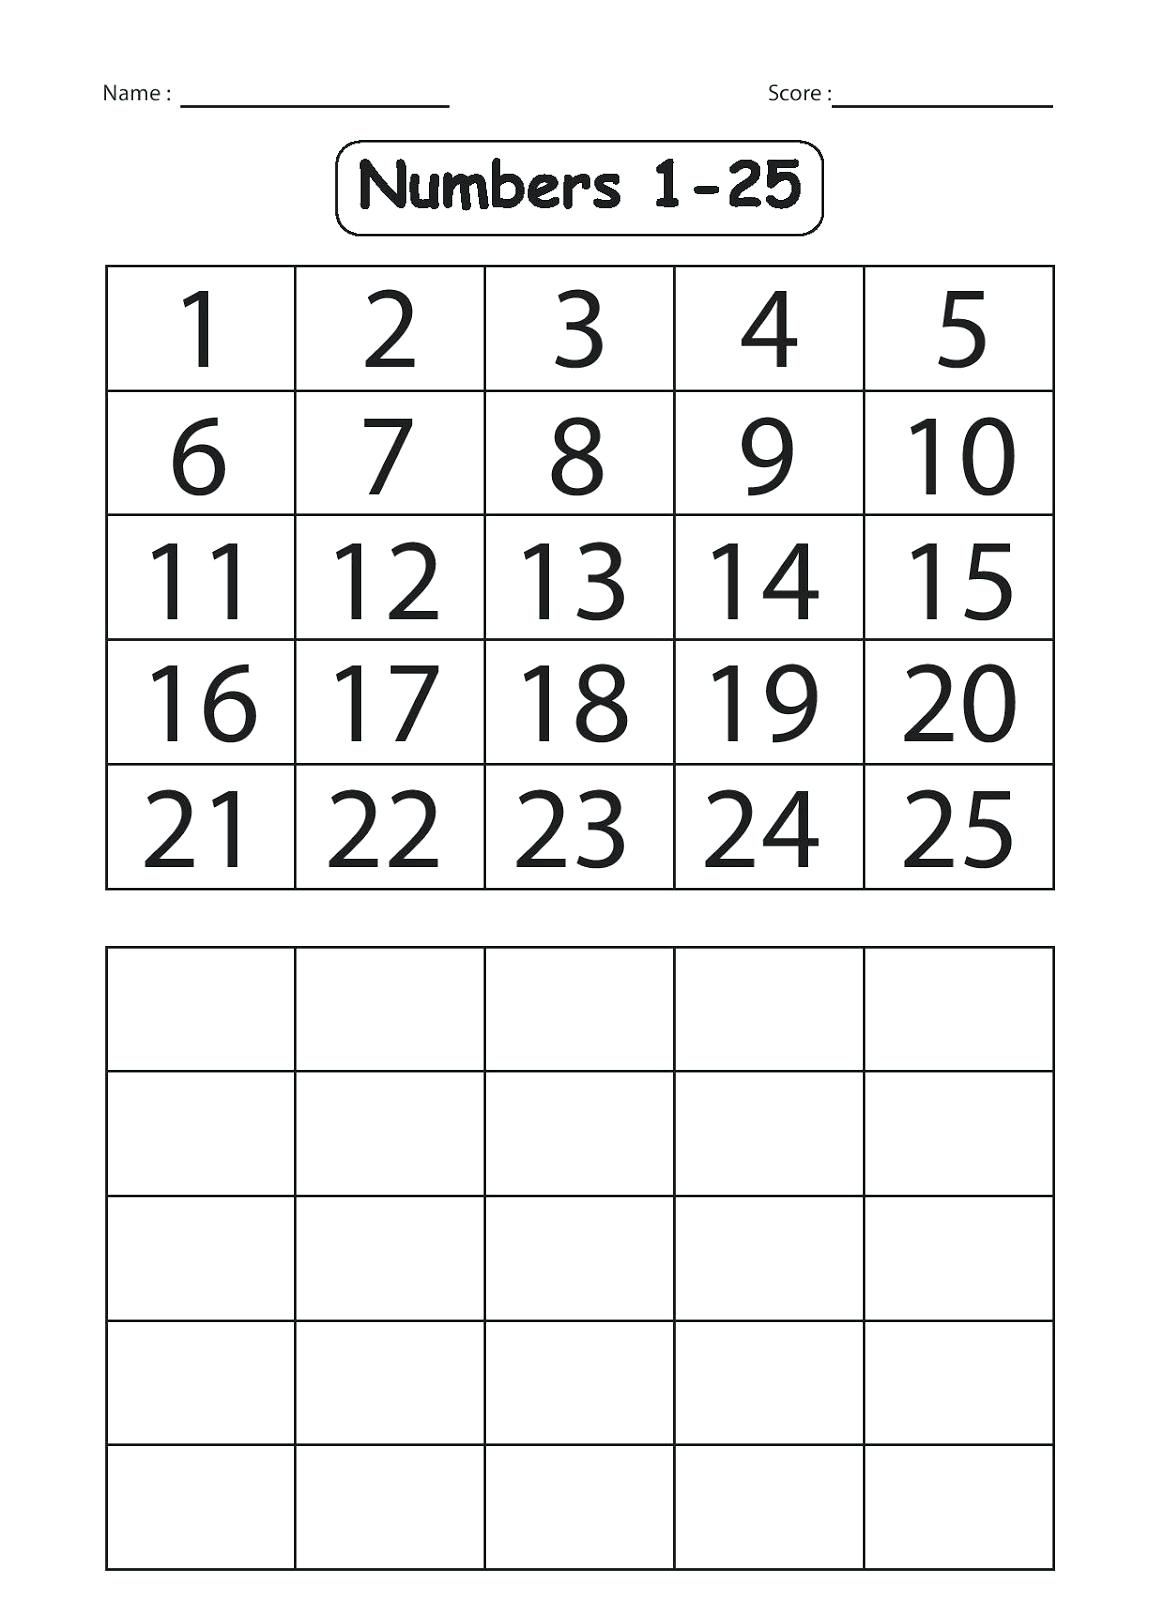 Free Number 1 Worksheets Pictures Math Free Preschool Worksheet Kd Worksheet Kindergarten Worksheets Preschool Worksheets Kindergarten Worksheets Printable [ 1600 x 1164 Pixel ]